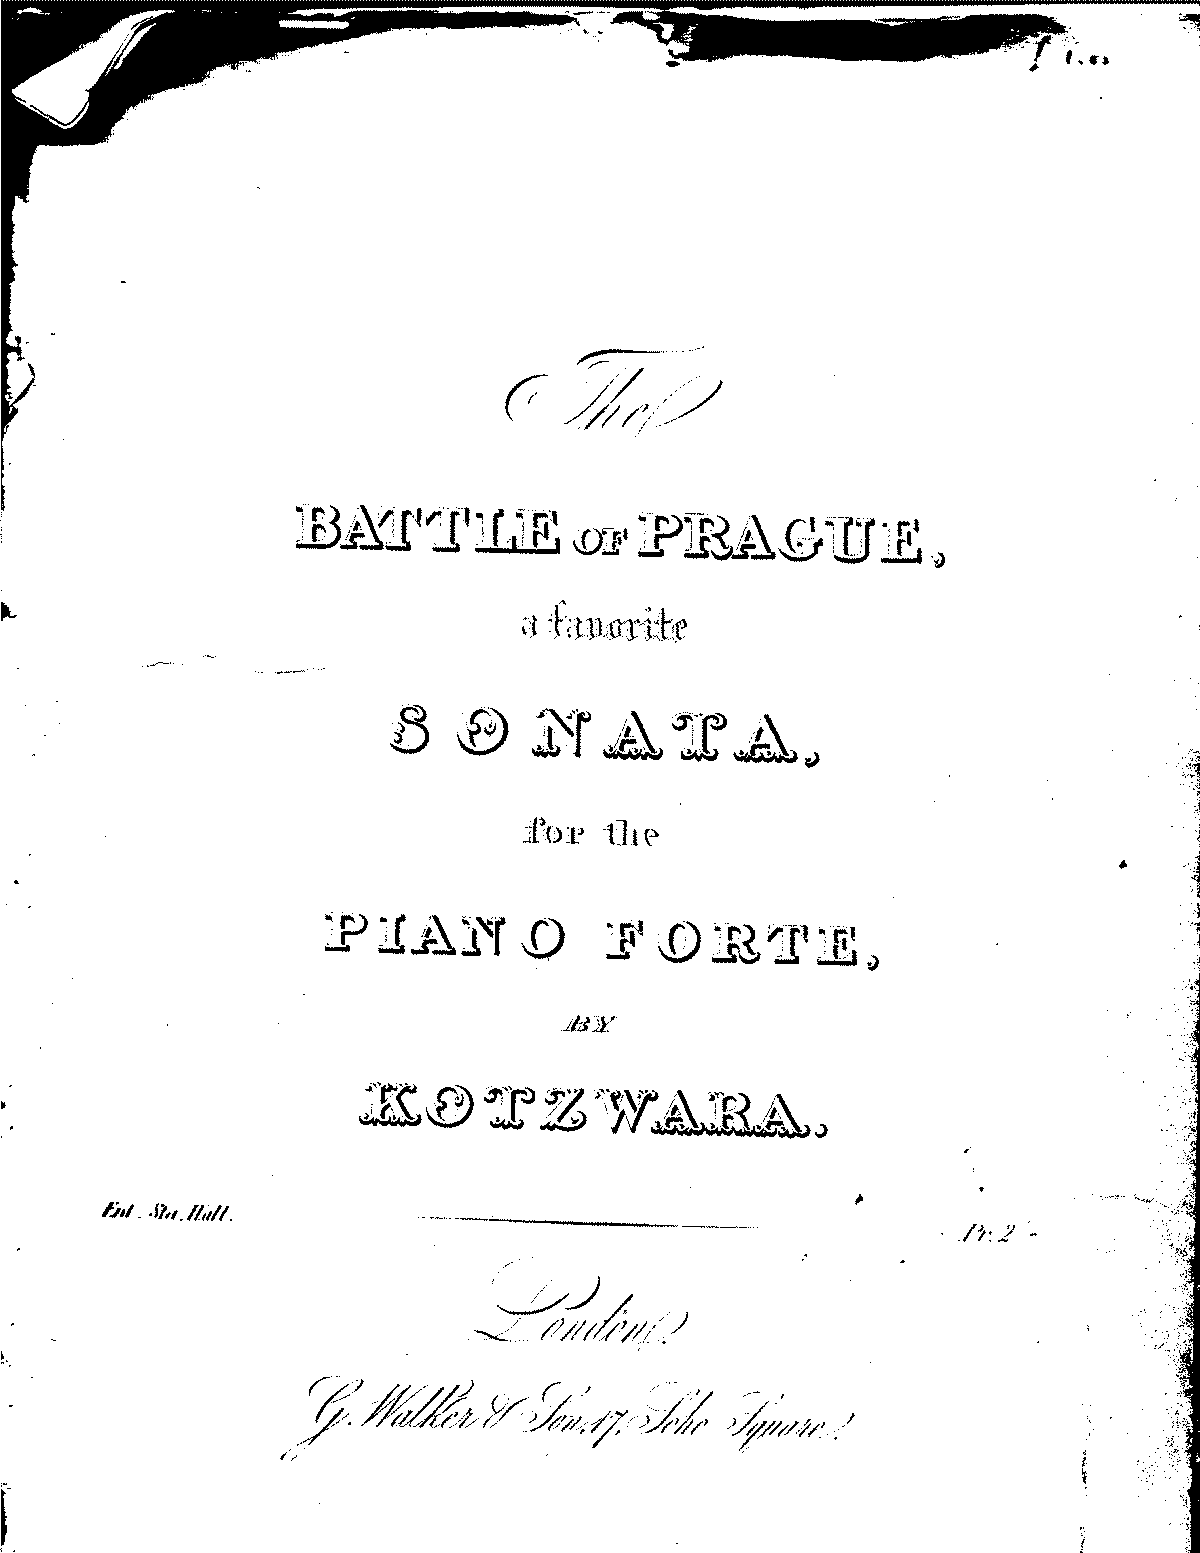 PMLP168797-kotzwara piano sonata the battle of prague.pdf